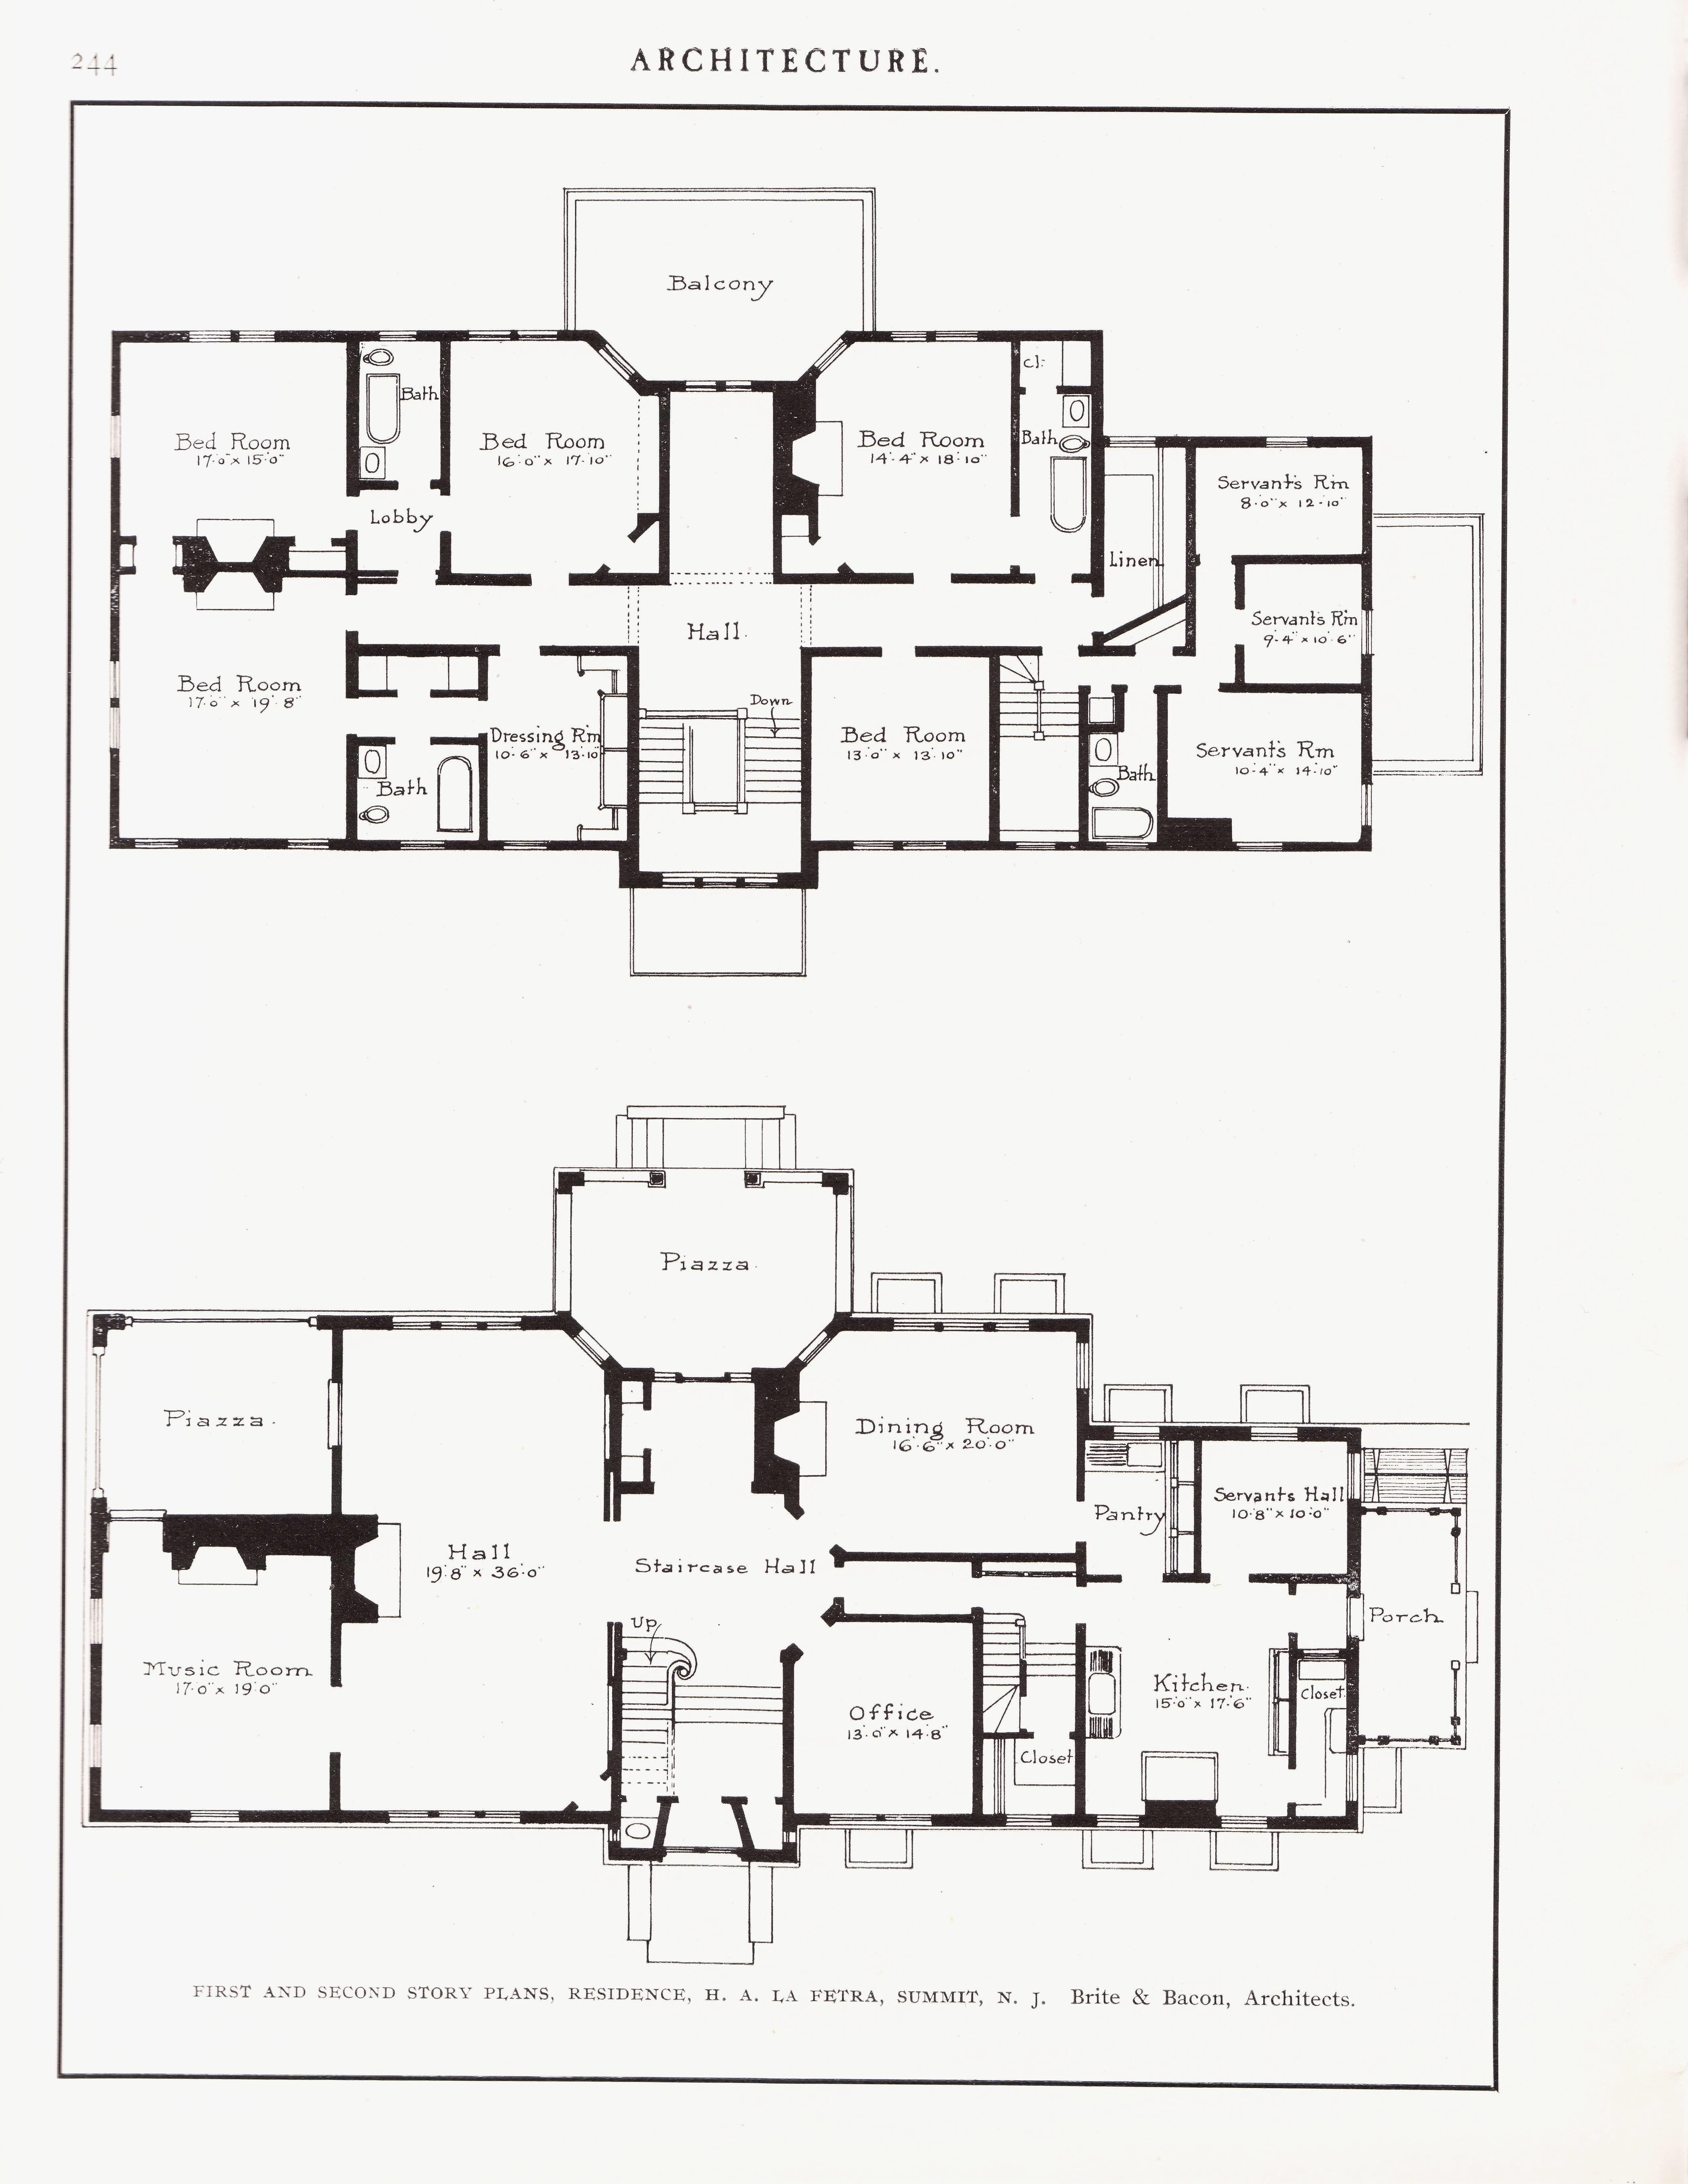 House Plans Free software New 53 Unique 3d House Plan Drawing software Free Download